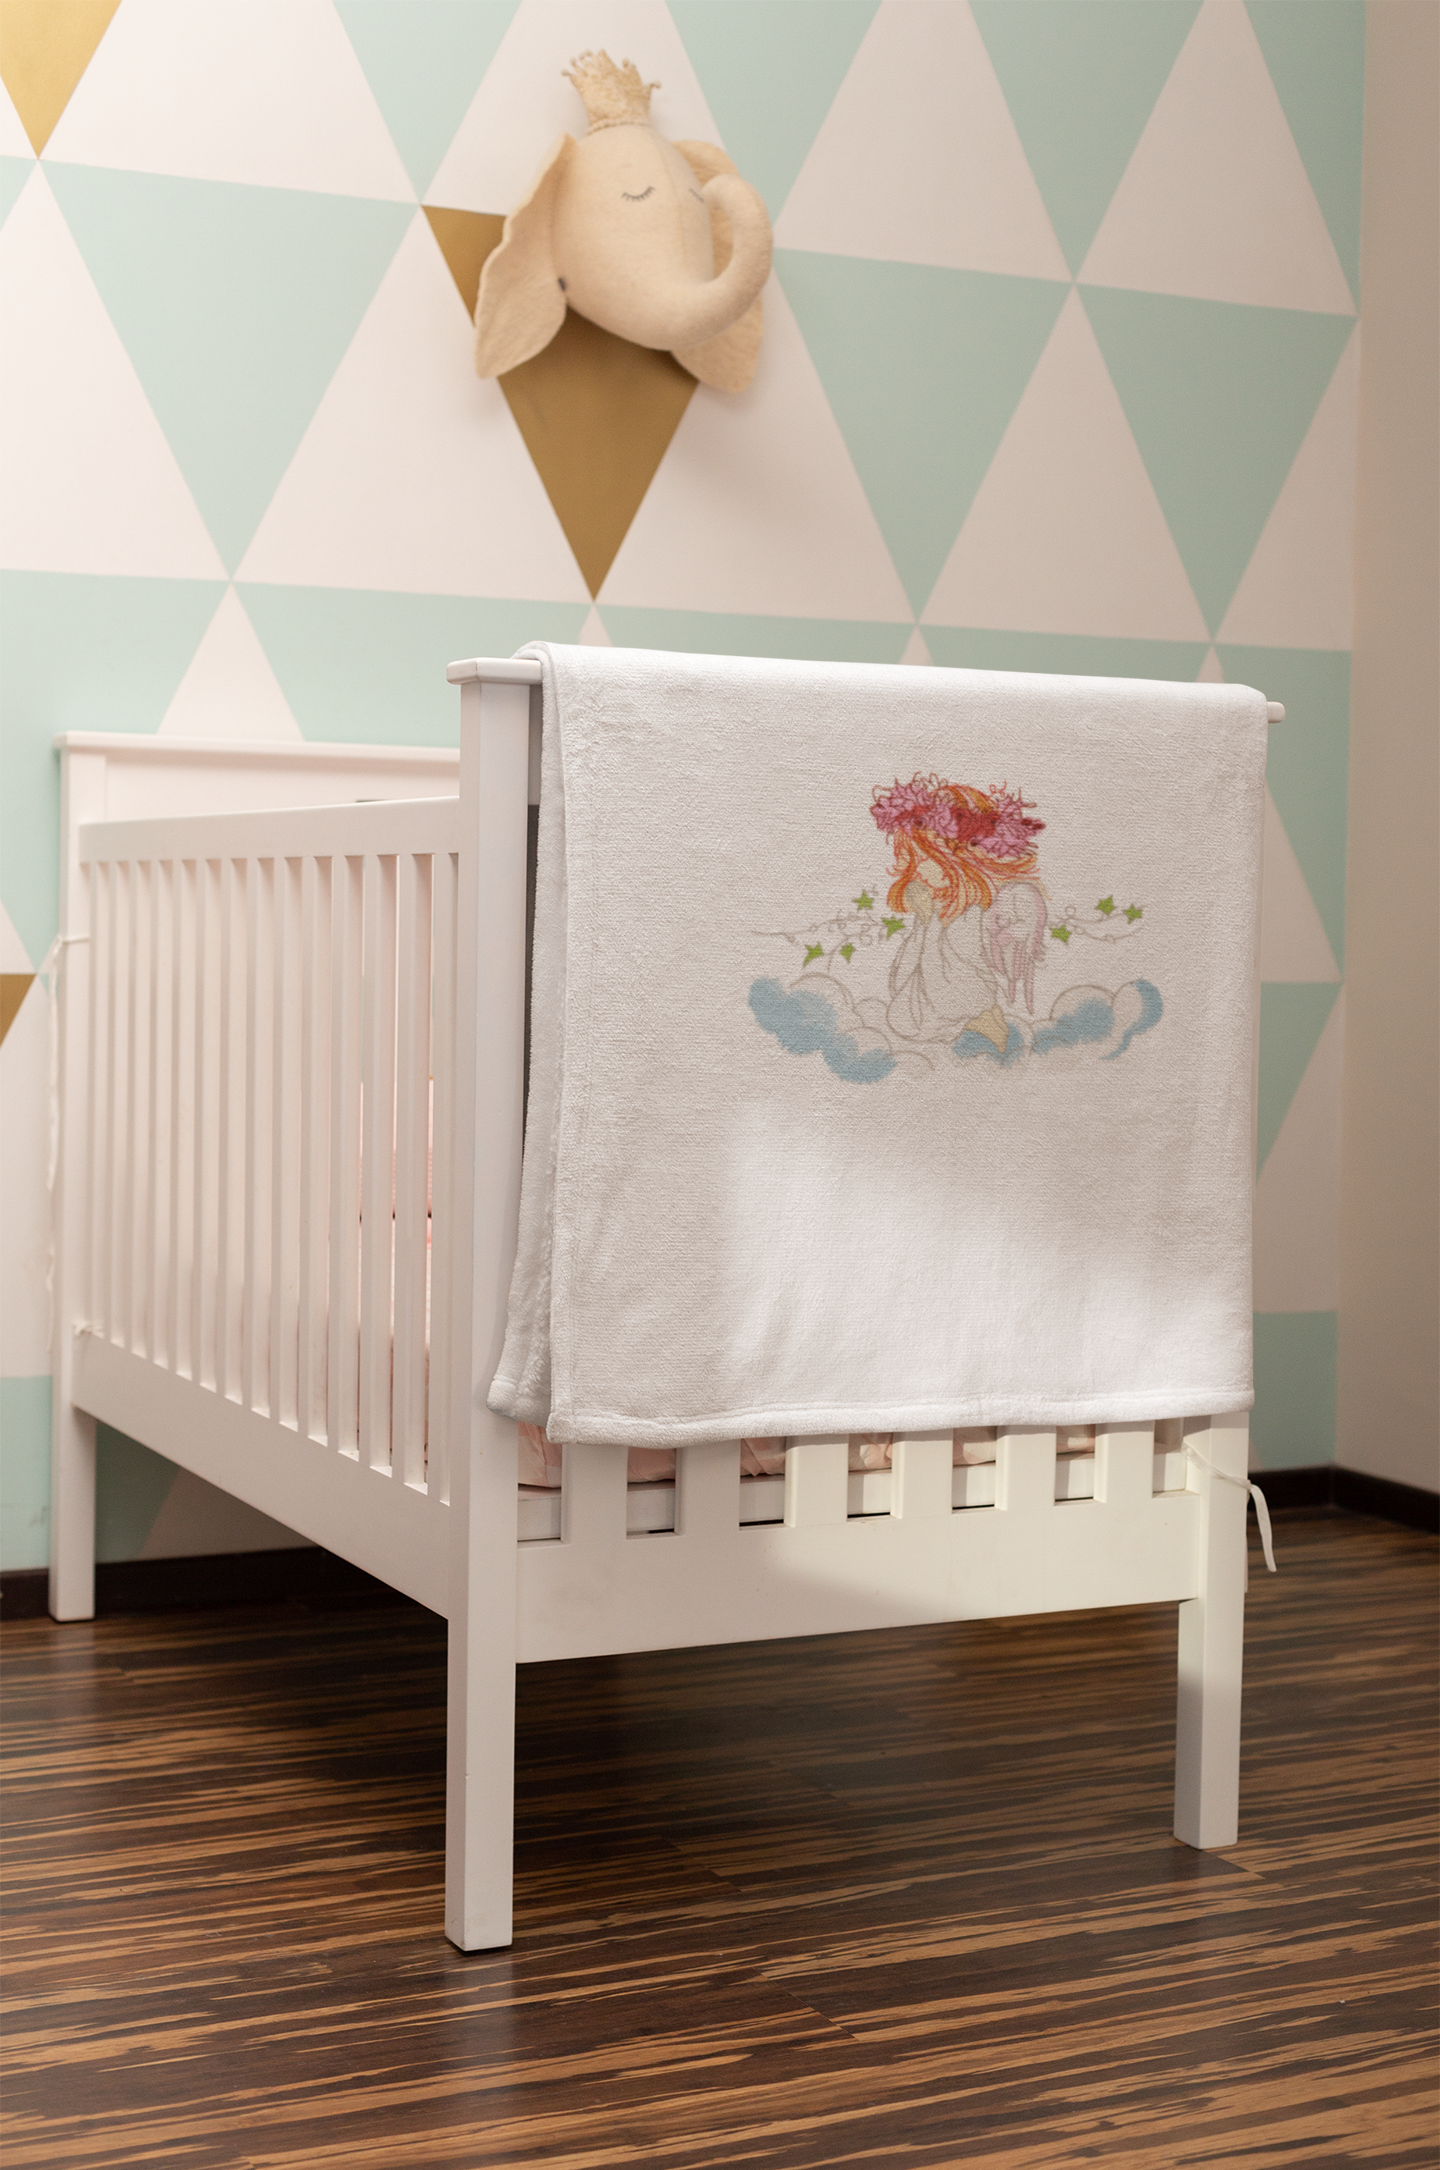 Embroidered towel with Angel design